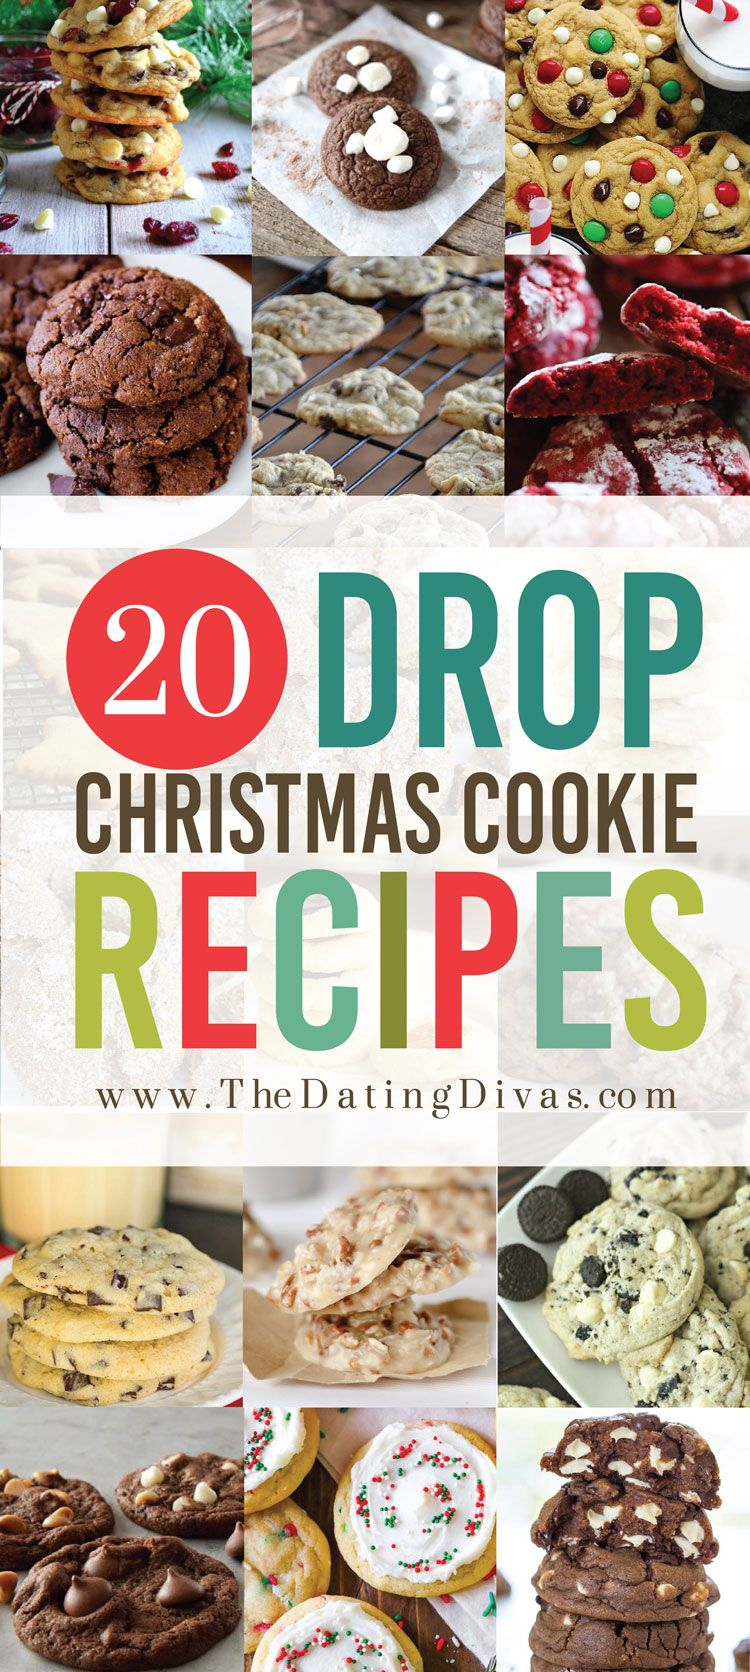 100 Of The Best Christmas Cookie Exchange Recipes Cookies Recipes Christmas Drop Cookie Recipes Cookie Exchange Recipes